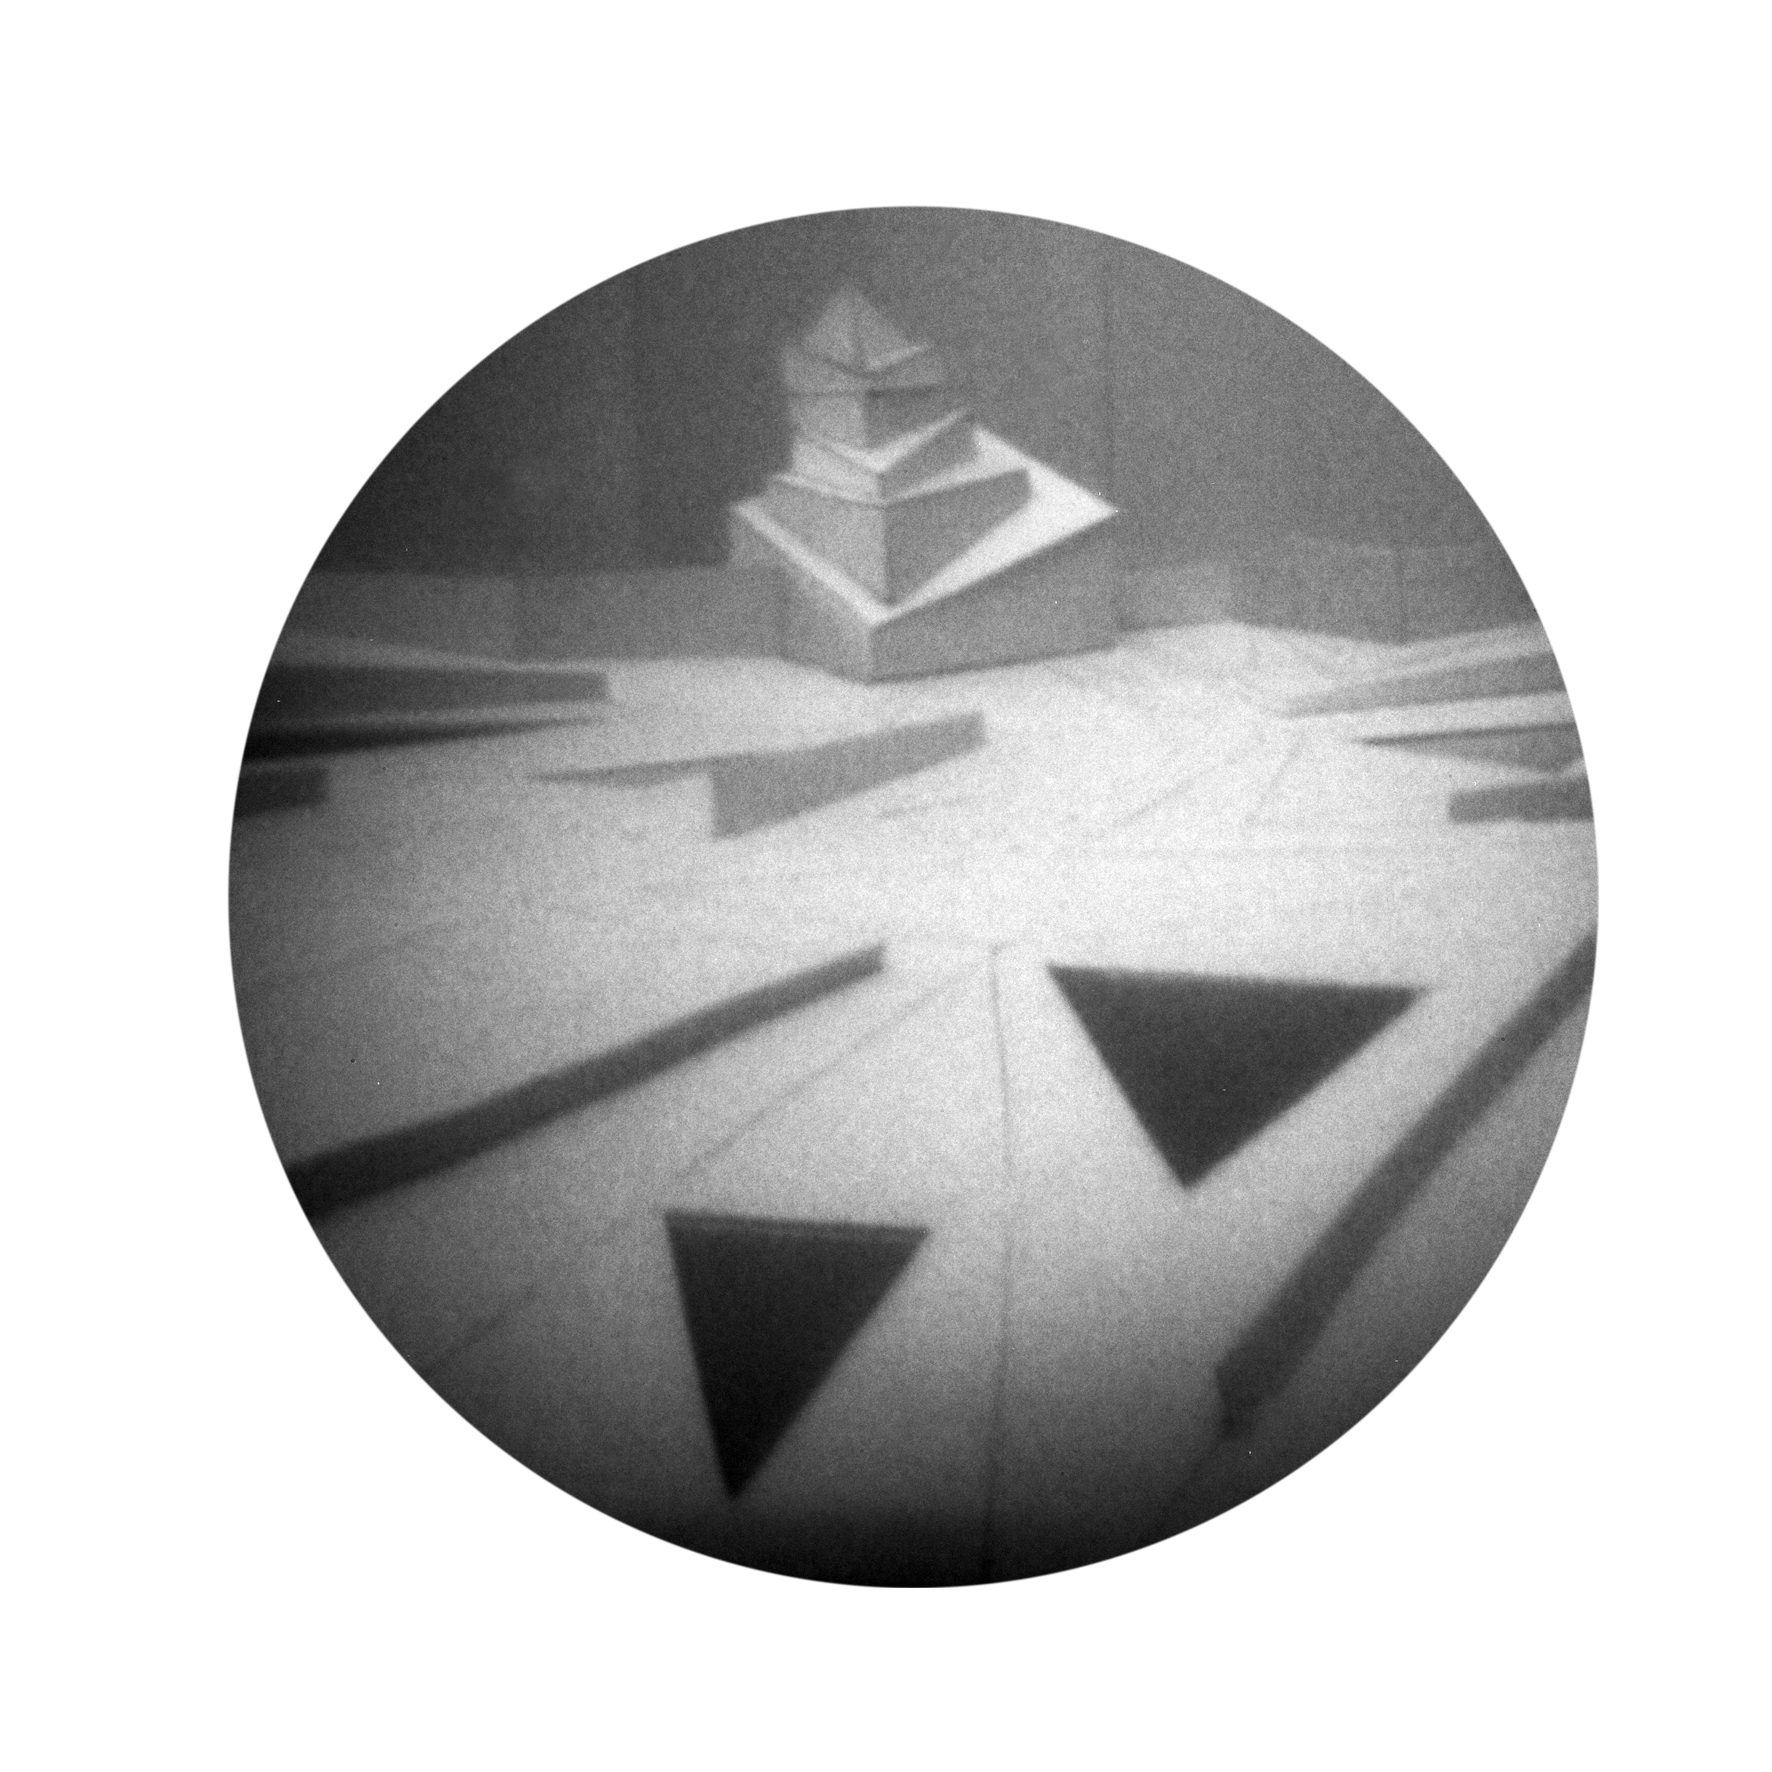 'A Modernist Dream', 2012/14, pinhole photograph of a cardboard model printed on off-white cartridge paper, 29.5 x 45 cm